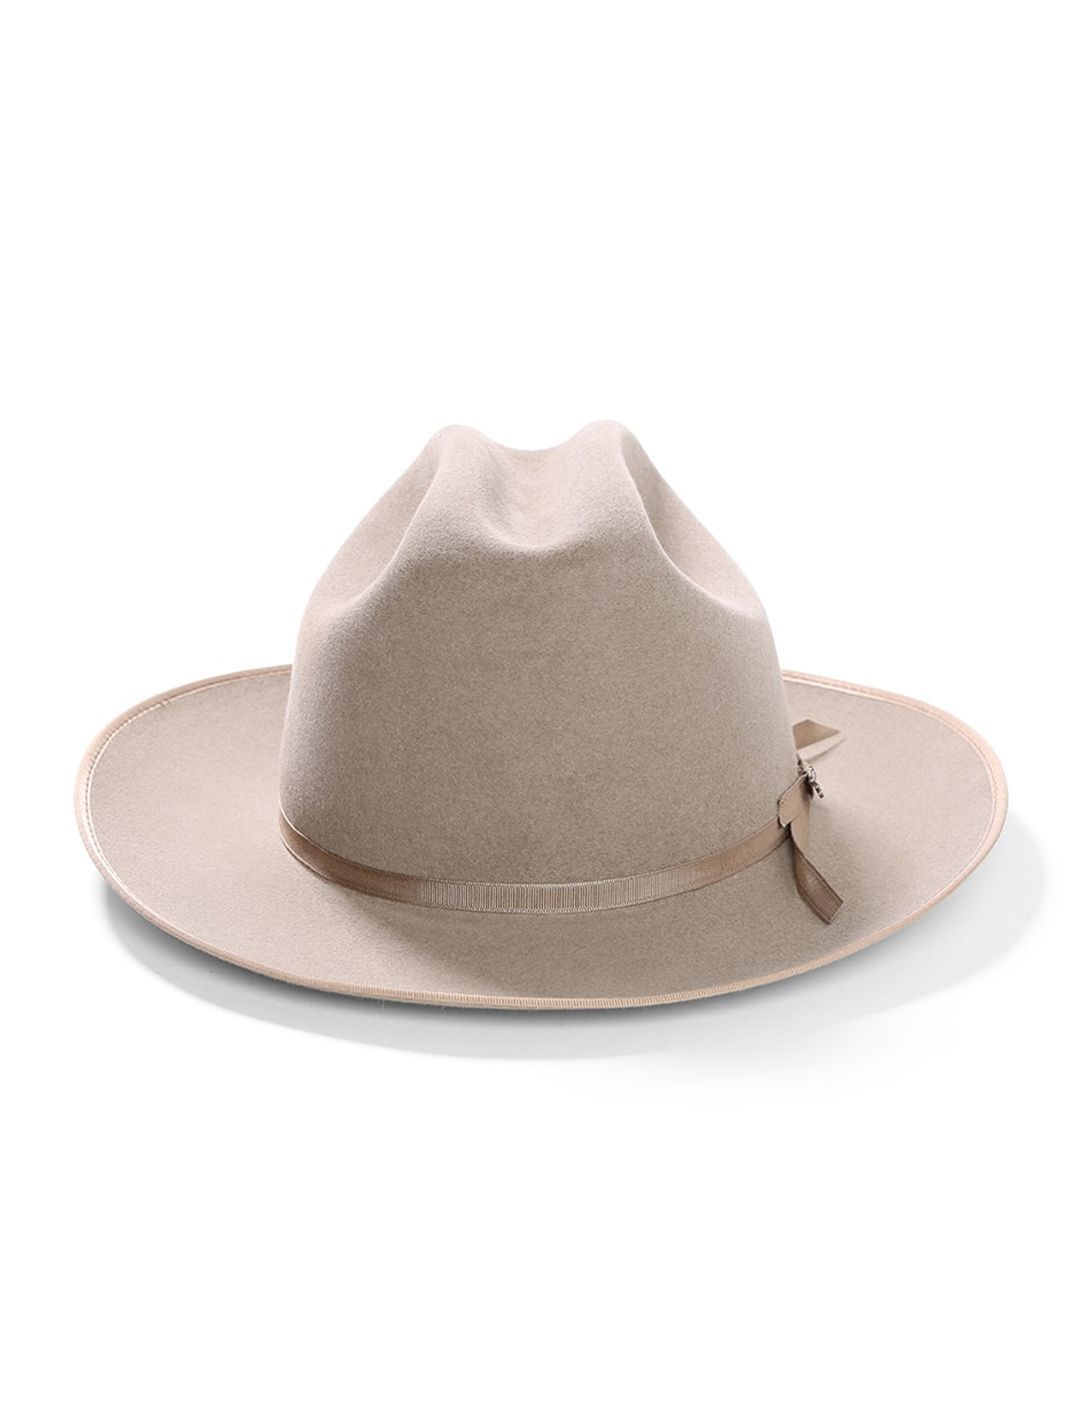 5f4722482e5 Stetson Men s Open Road Royal Deluxe Hat TFROPR-3626. Details